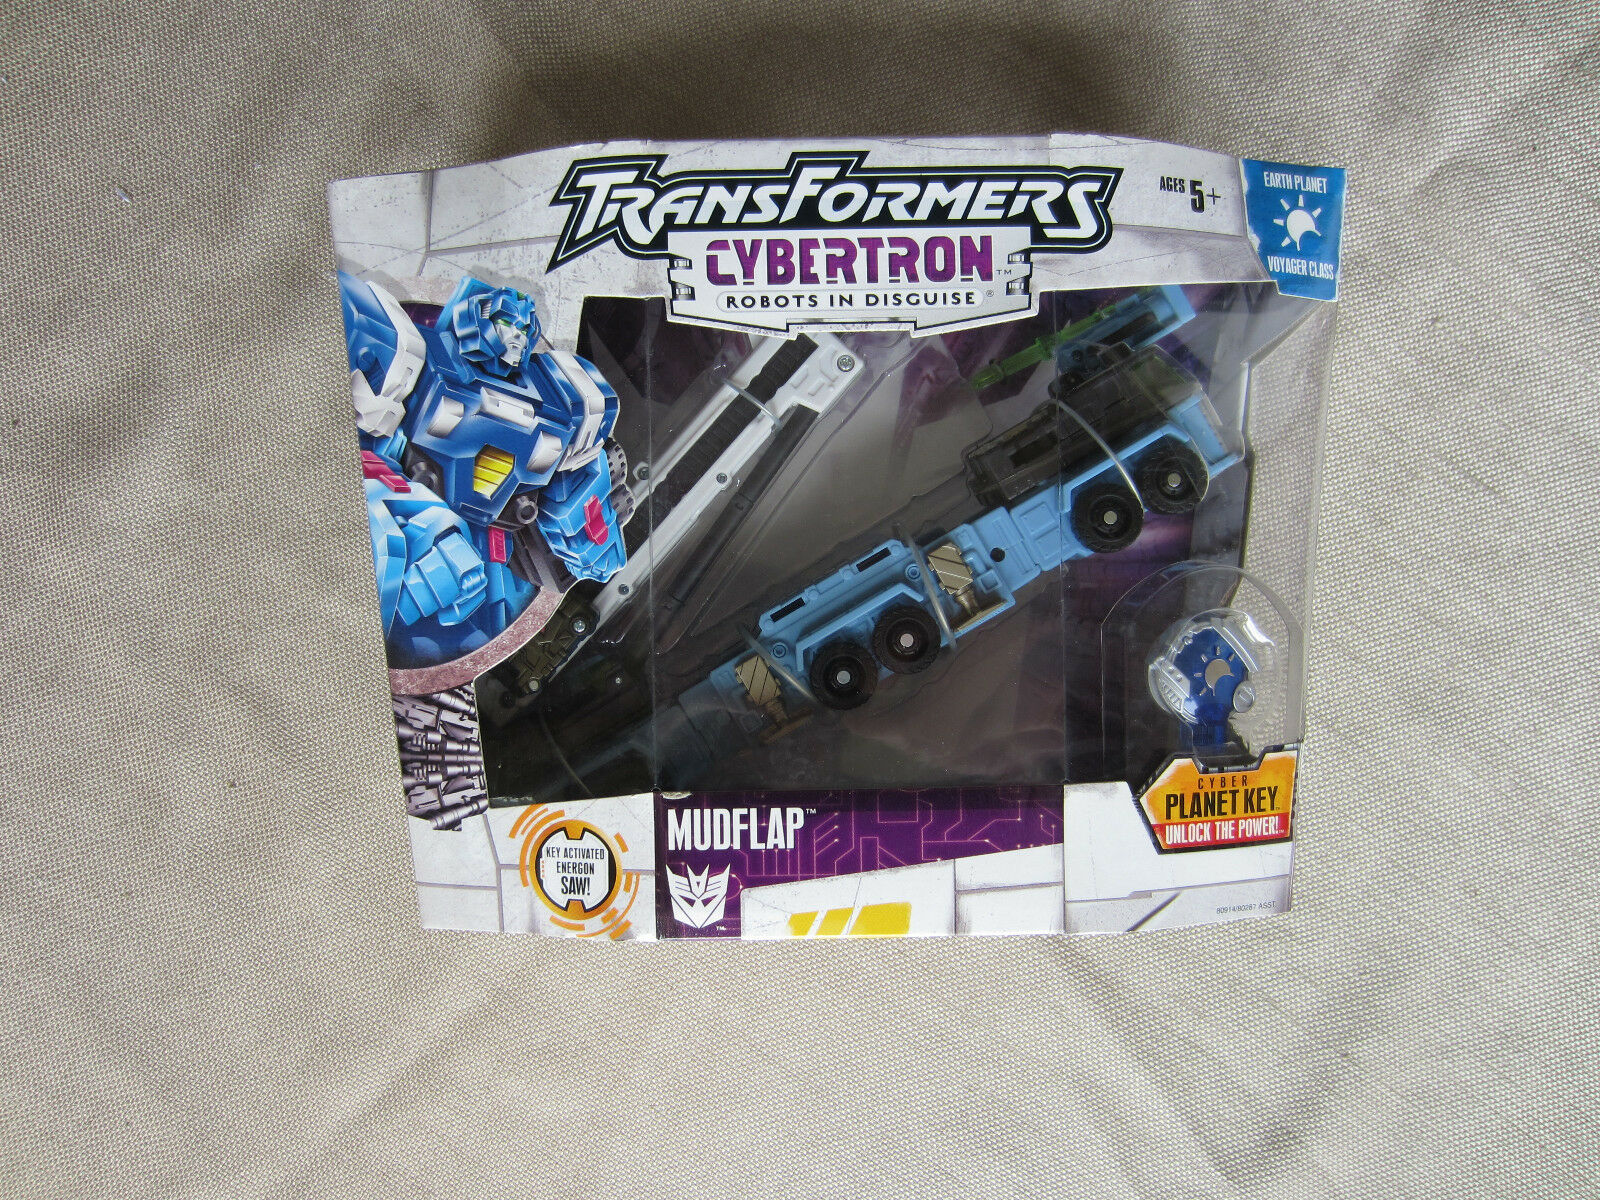 Transformers Action Figure Cybertron Earth Planet Voyager class Mudflap New